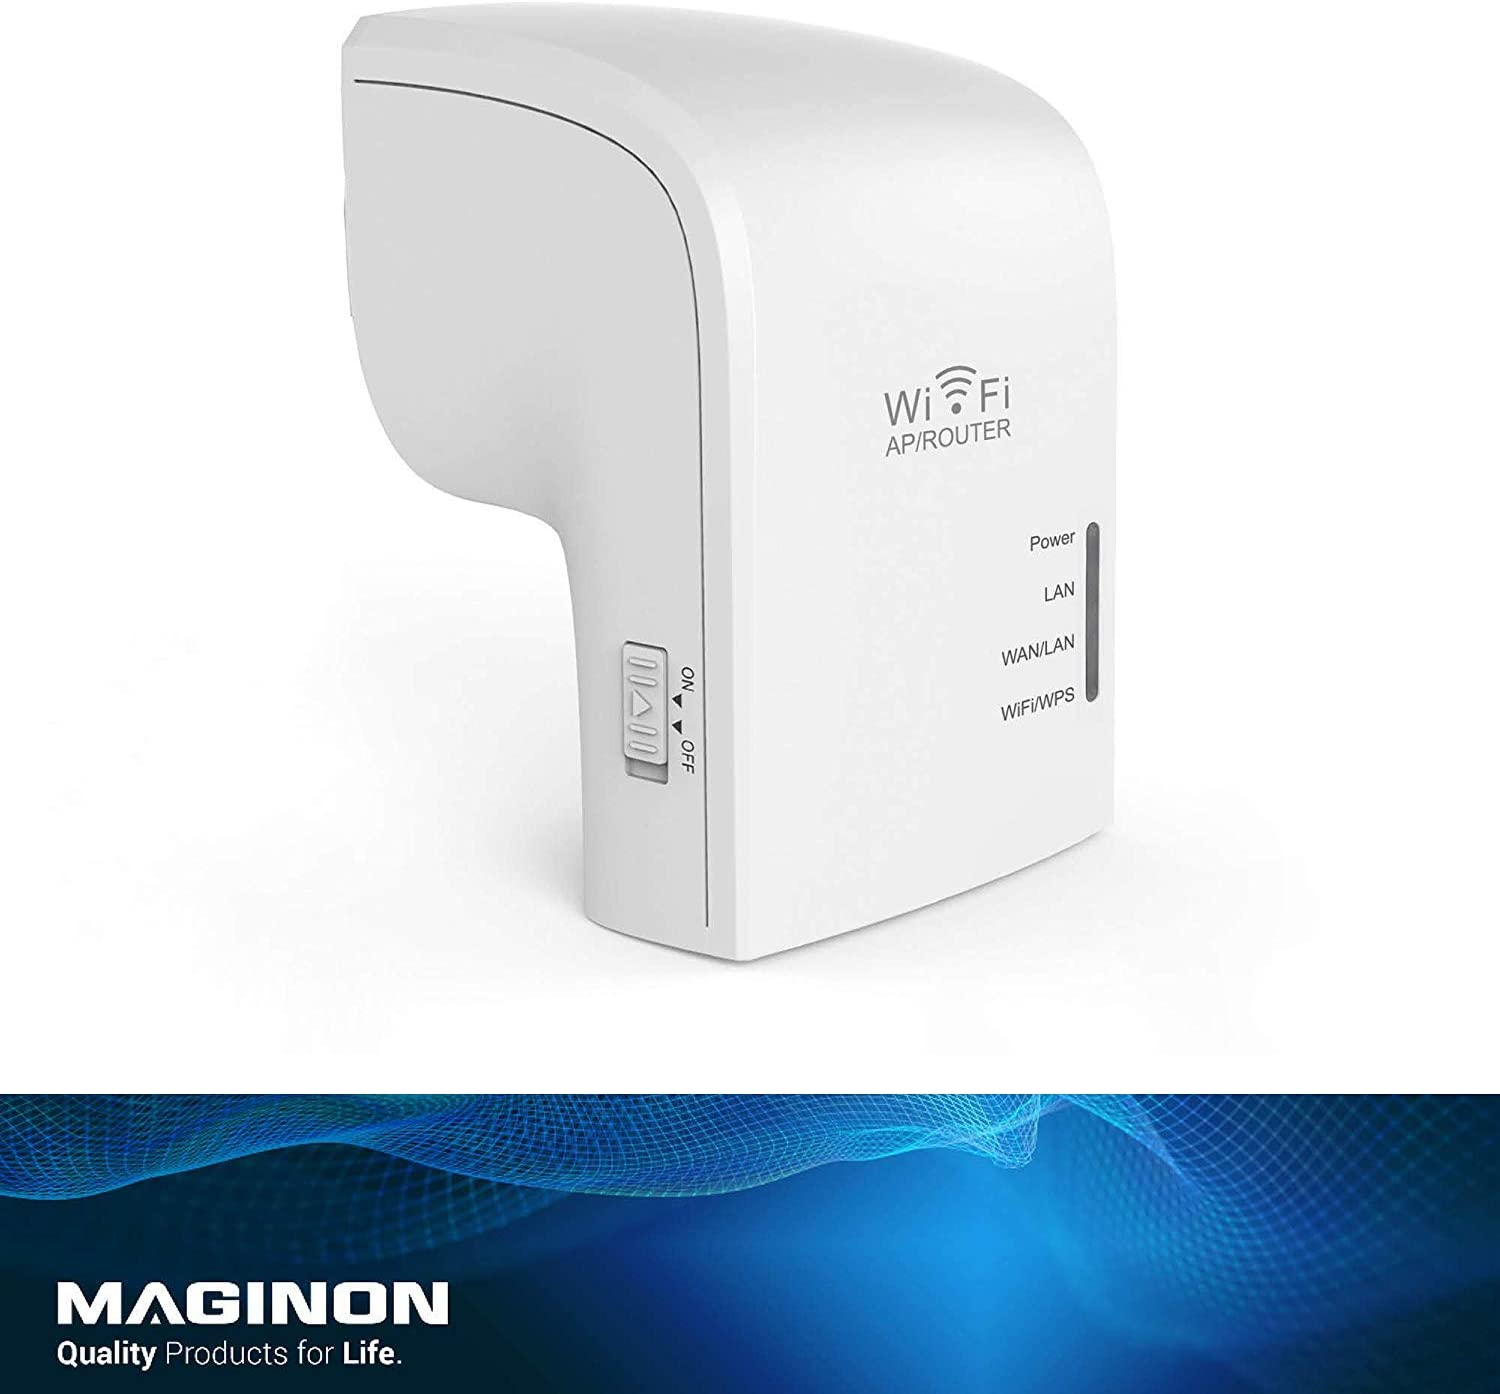 Maginon WLR755AC Wireless WiFi Signal Range Repeater - Dual Band, 5ghz/433mbps & 2.4ghz/300mbps (733mpbs total) - Portable Extender with Ethernet Port, Router, Access Point - Internal Antenna